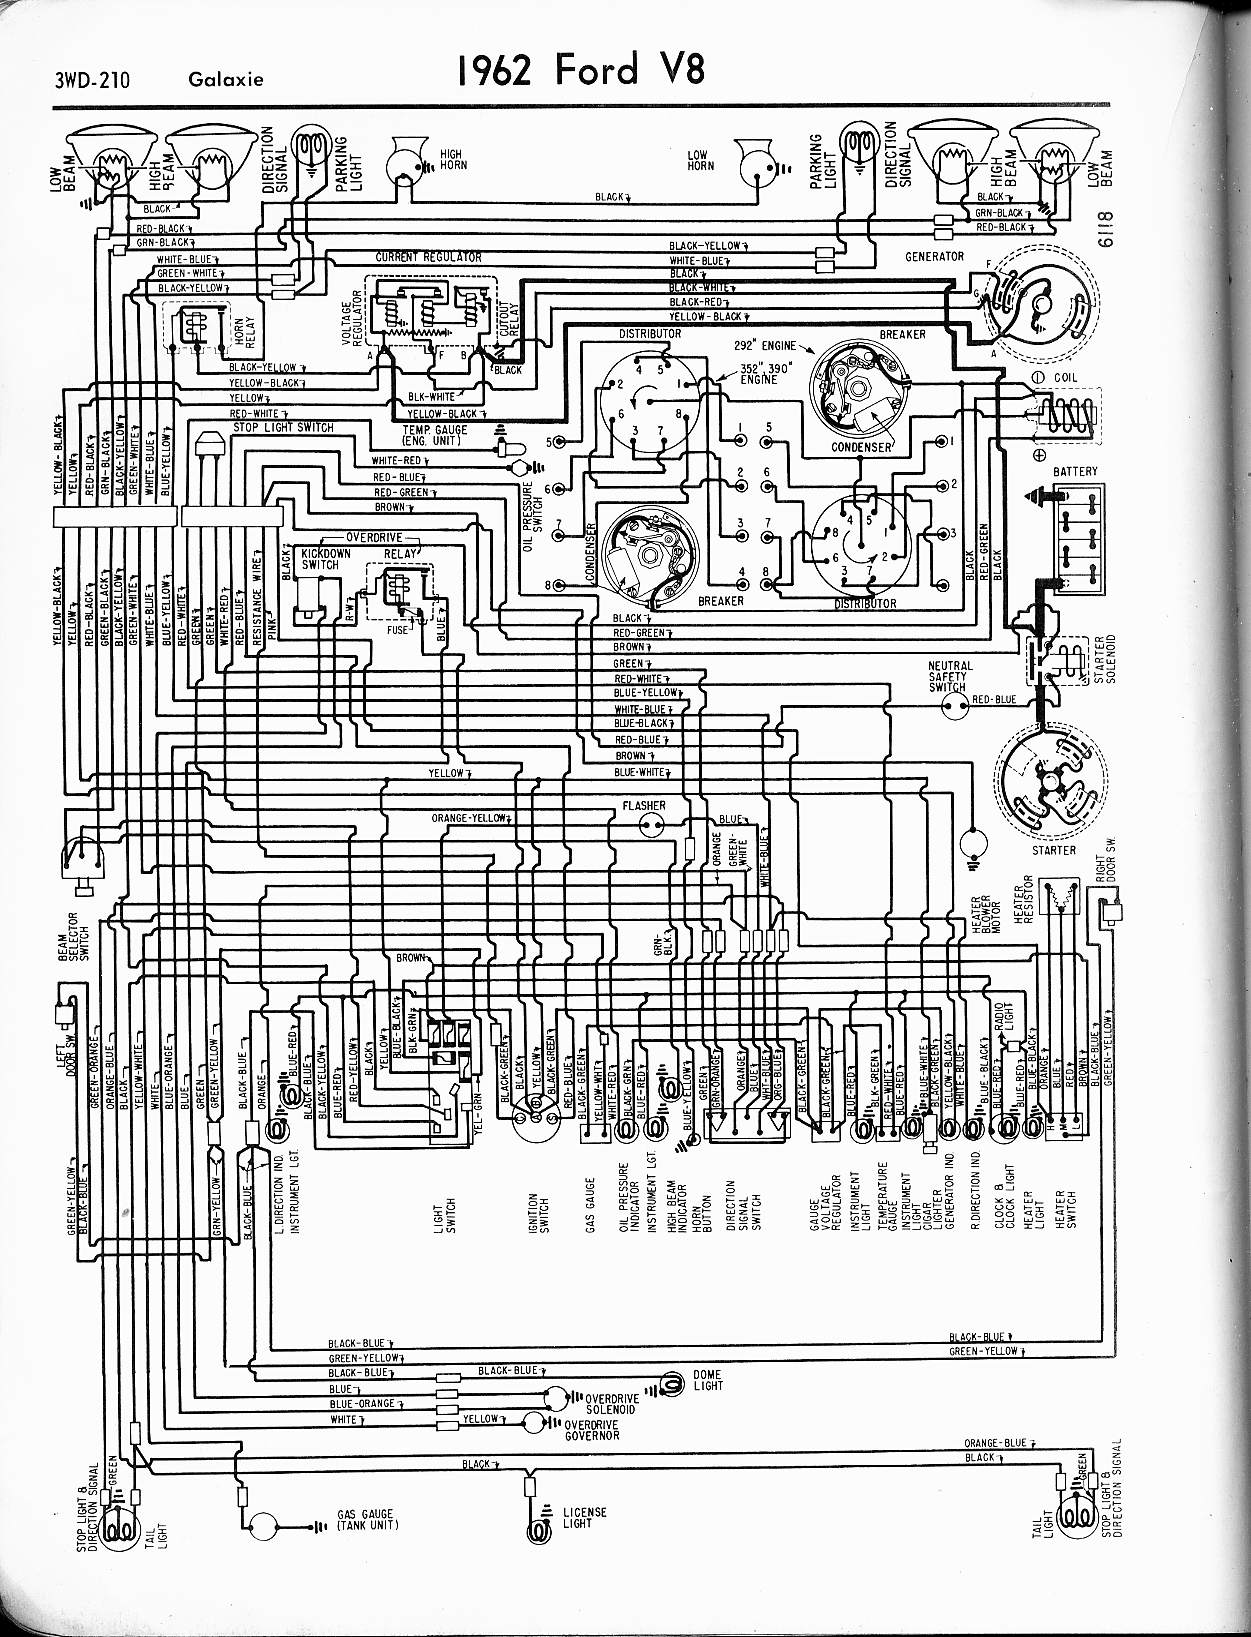 62 ford thunderbird wiring diagram html with 497947 Ignition Switch Wiring on 1955 Thunderbird Fuse Box Location moreover Windows Wiring Diagram For 1961 63 Ford likewise 1957 Ford Thunderbird Wiring Diagram Manual Brochure 232240338790 also 1956 Chevy Fuse Box Diagram in addition 62cwb Thunderbird Wiring Harness The Stereo Wiring Diagrams 2005 Ford.